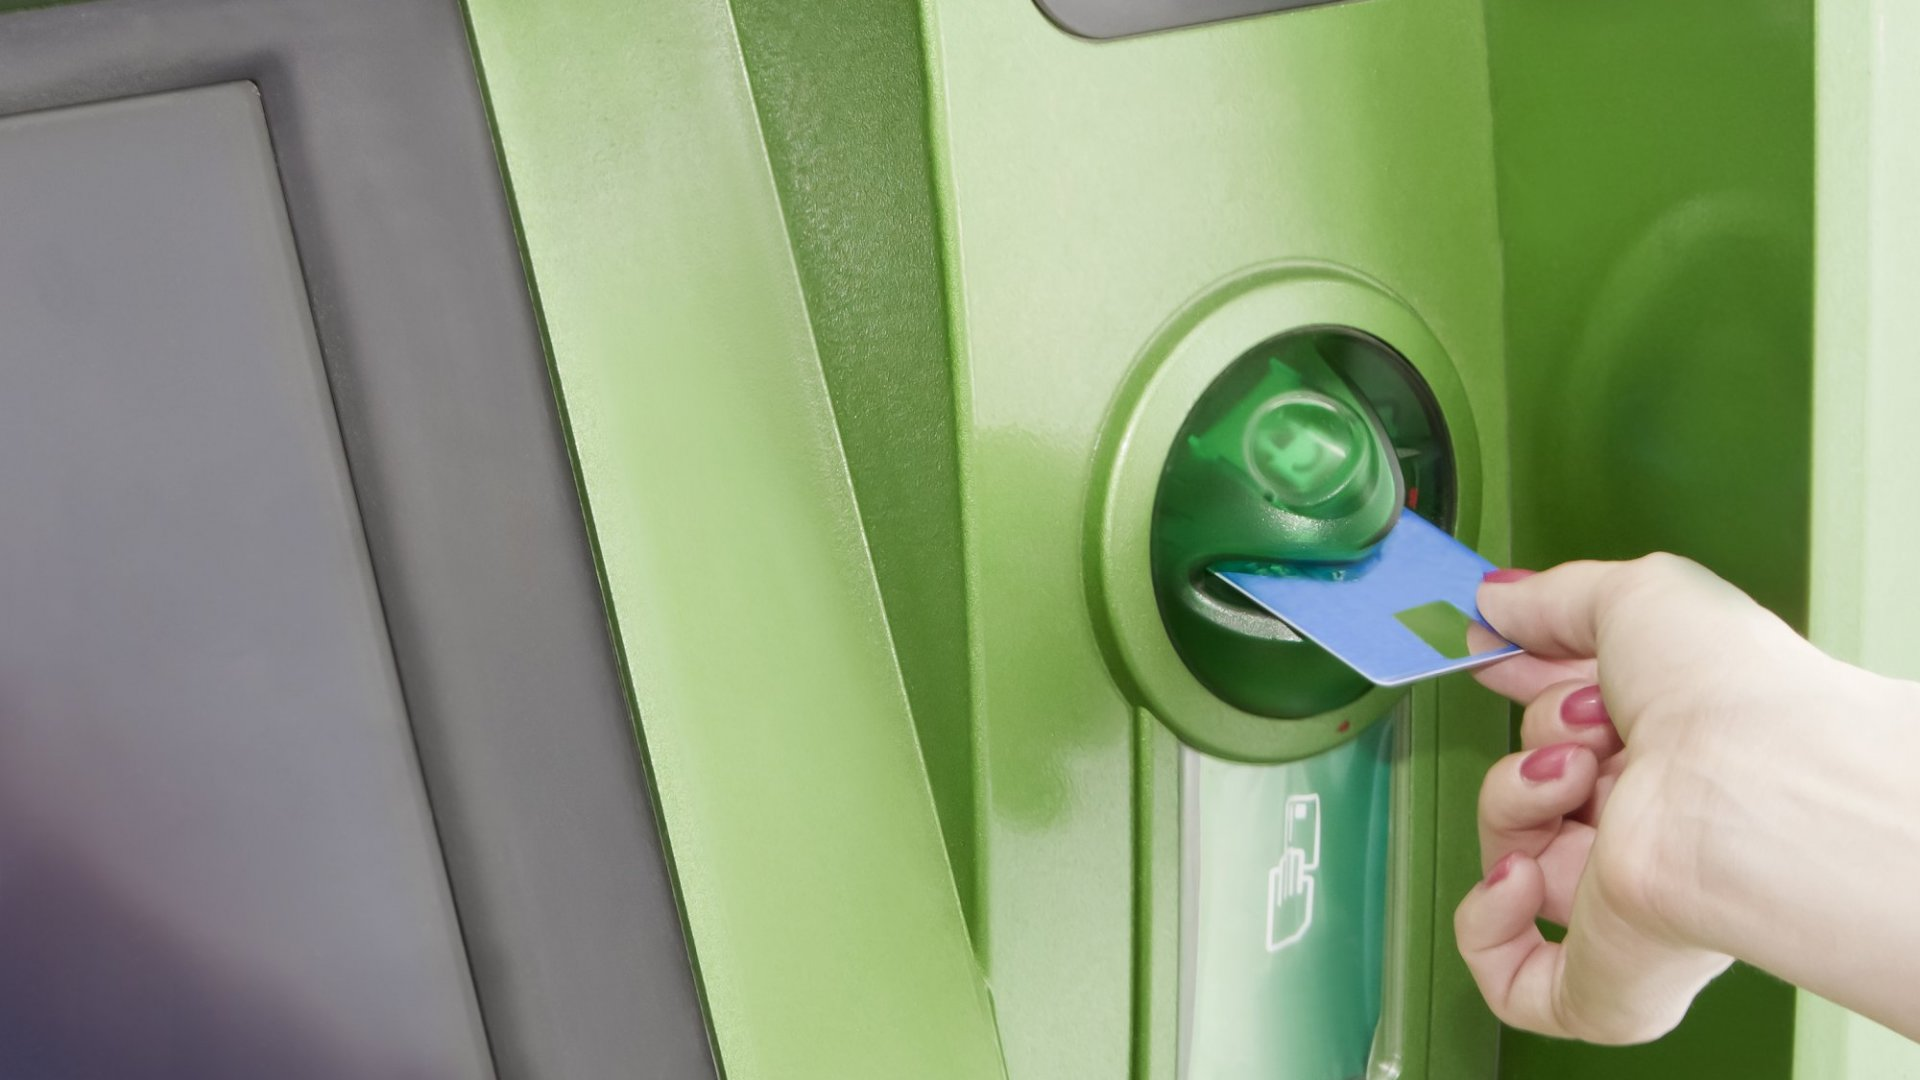 24 Million People Now Keep Their Money in Green Banks